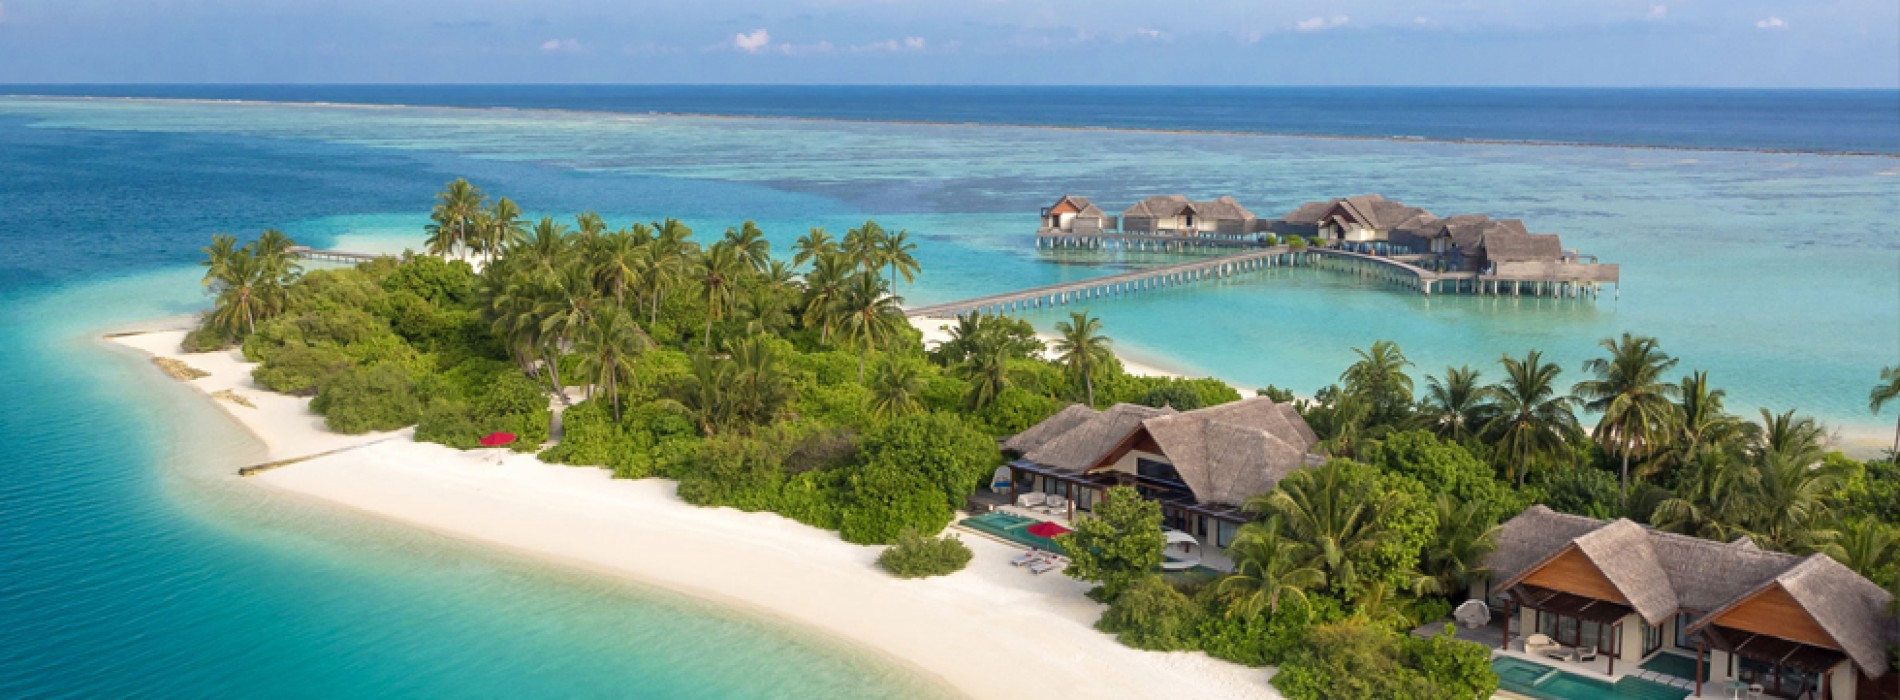 Voting kicks off for Adventures of Maldives (Dhivehi Aahitha) Video Competition